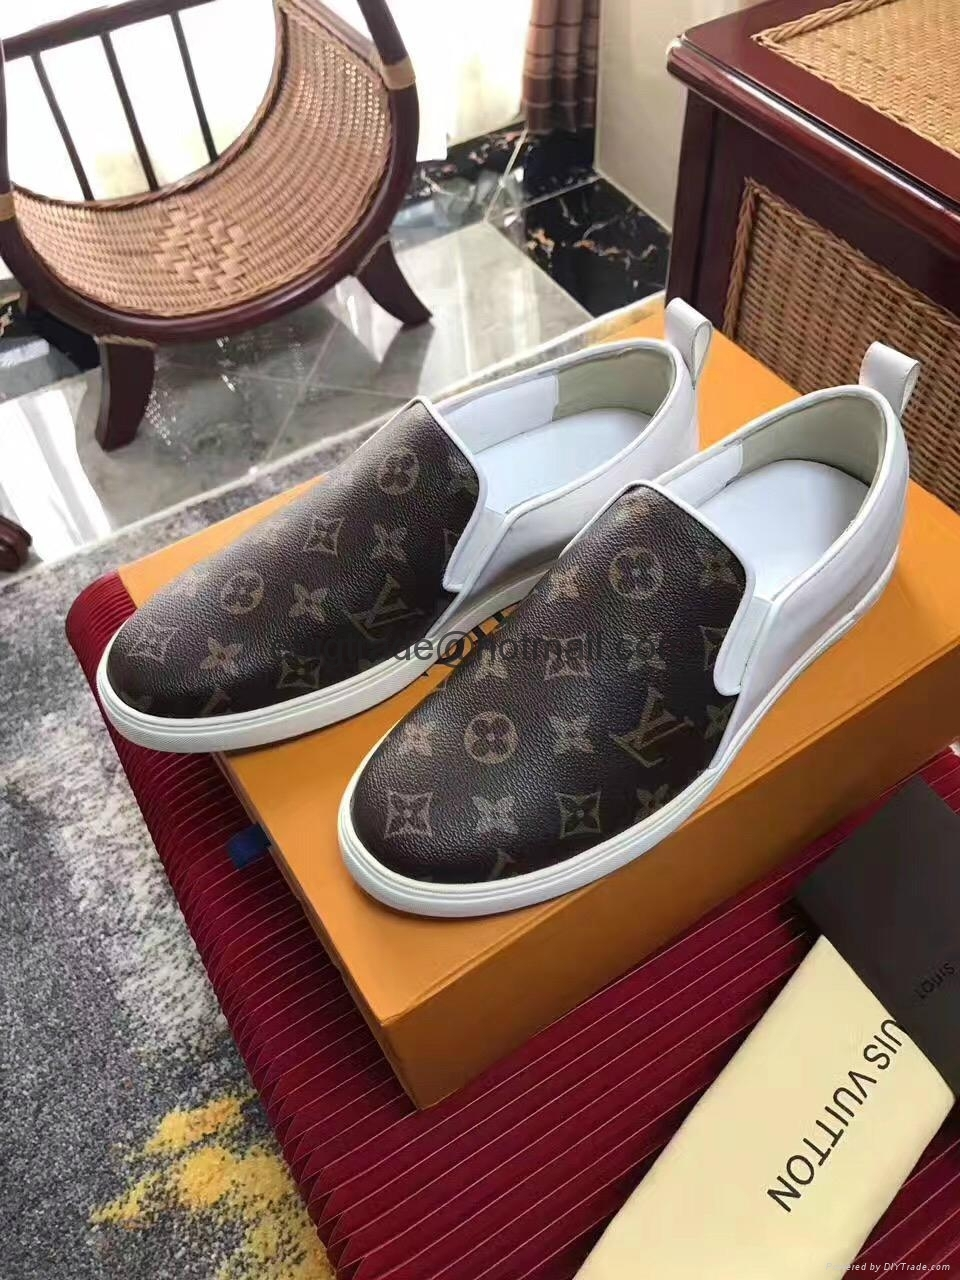 discount LV shoes